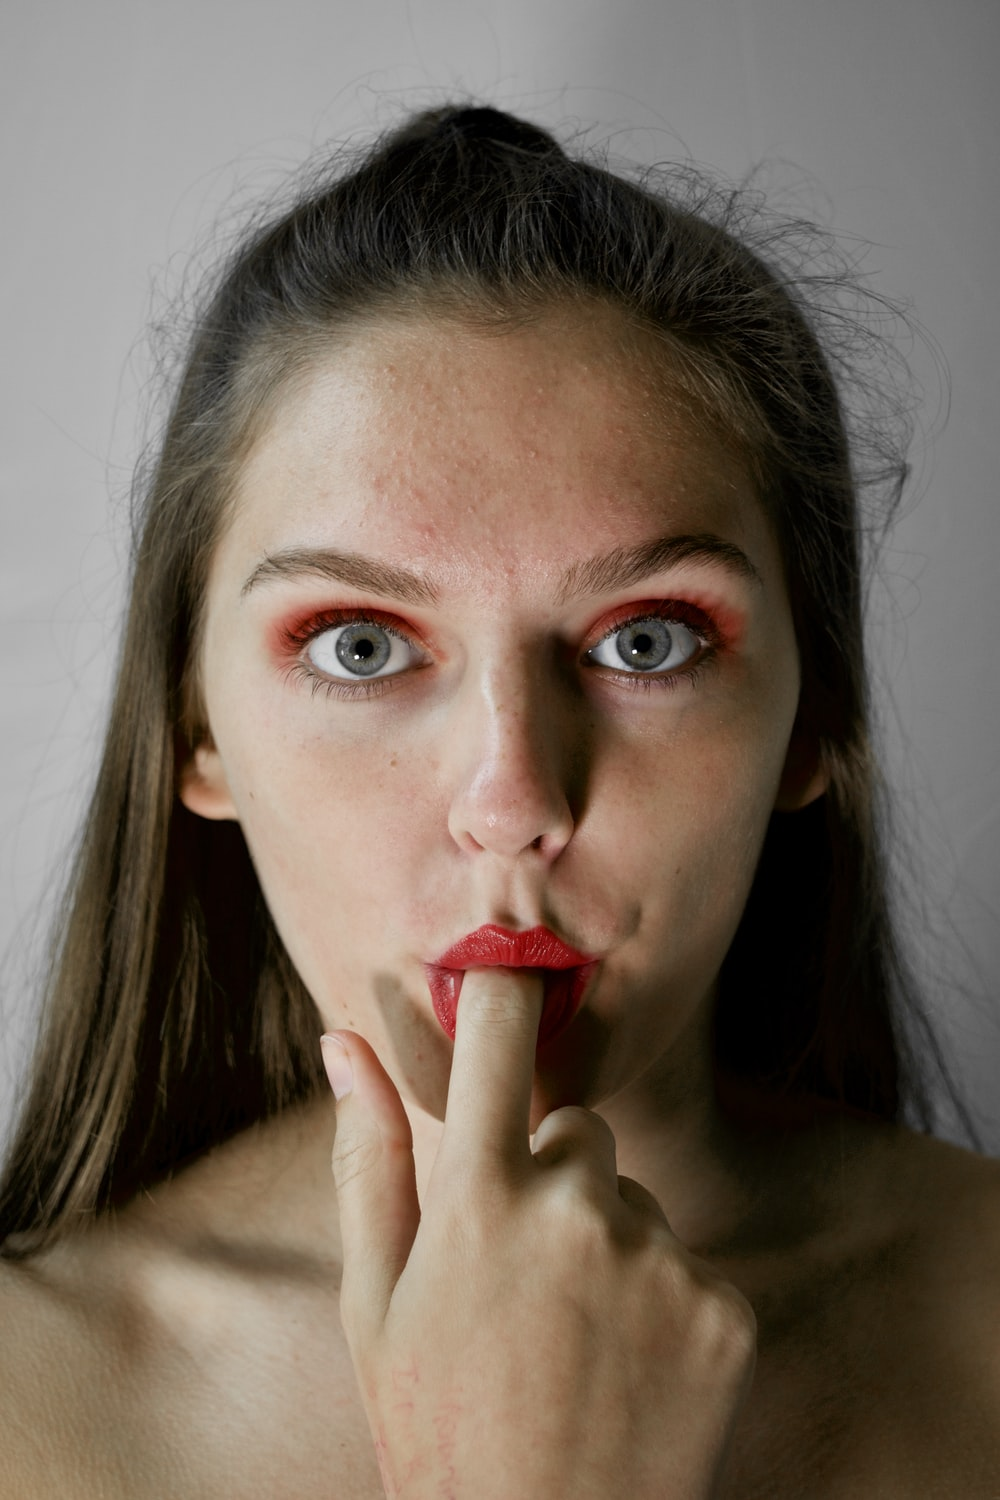 woman with finger on mouth inside room